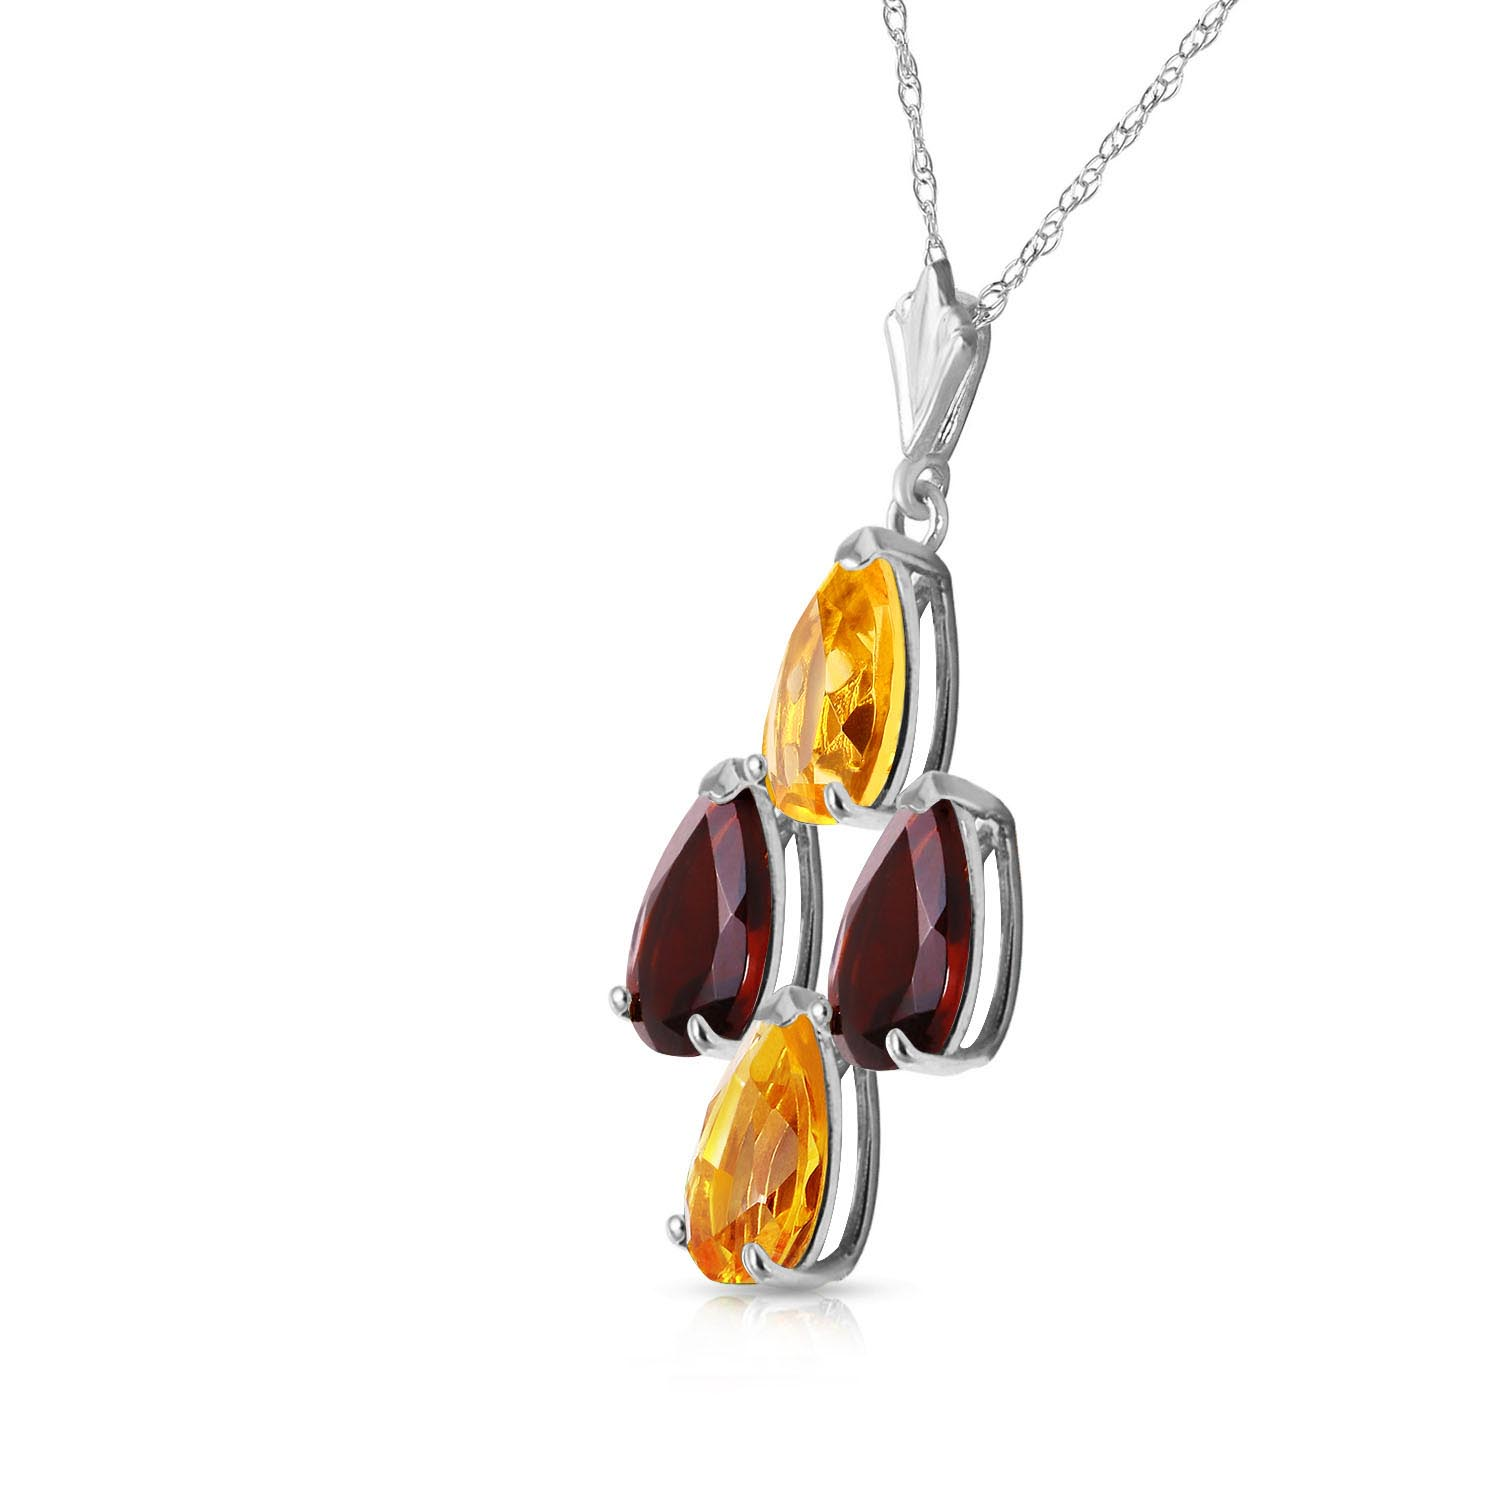 Citrine and Garnet Pendant Necklace 1.5ctw in 9ct White Gold